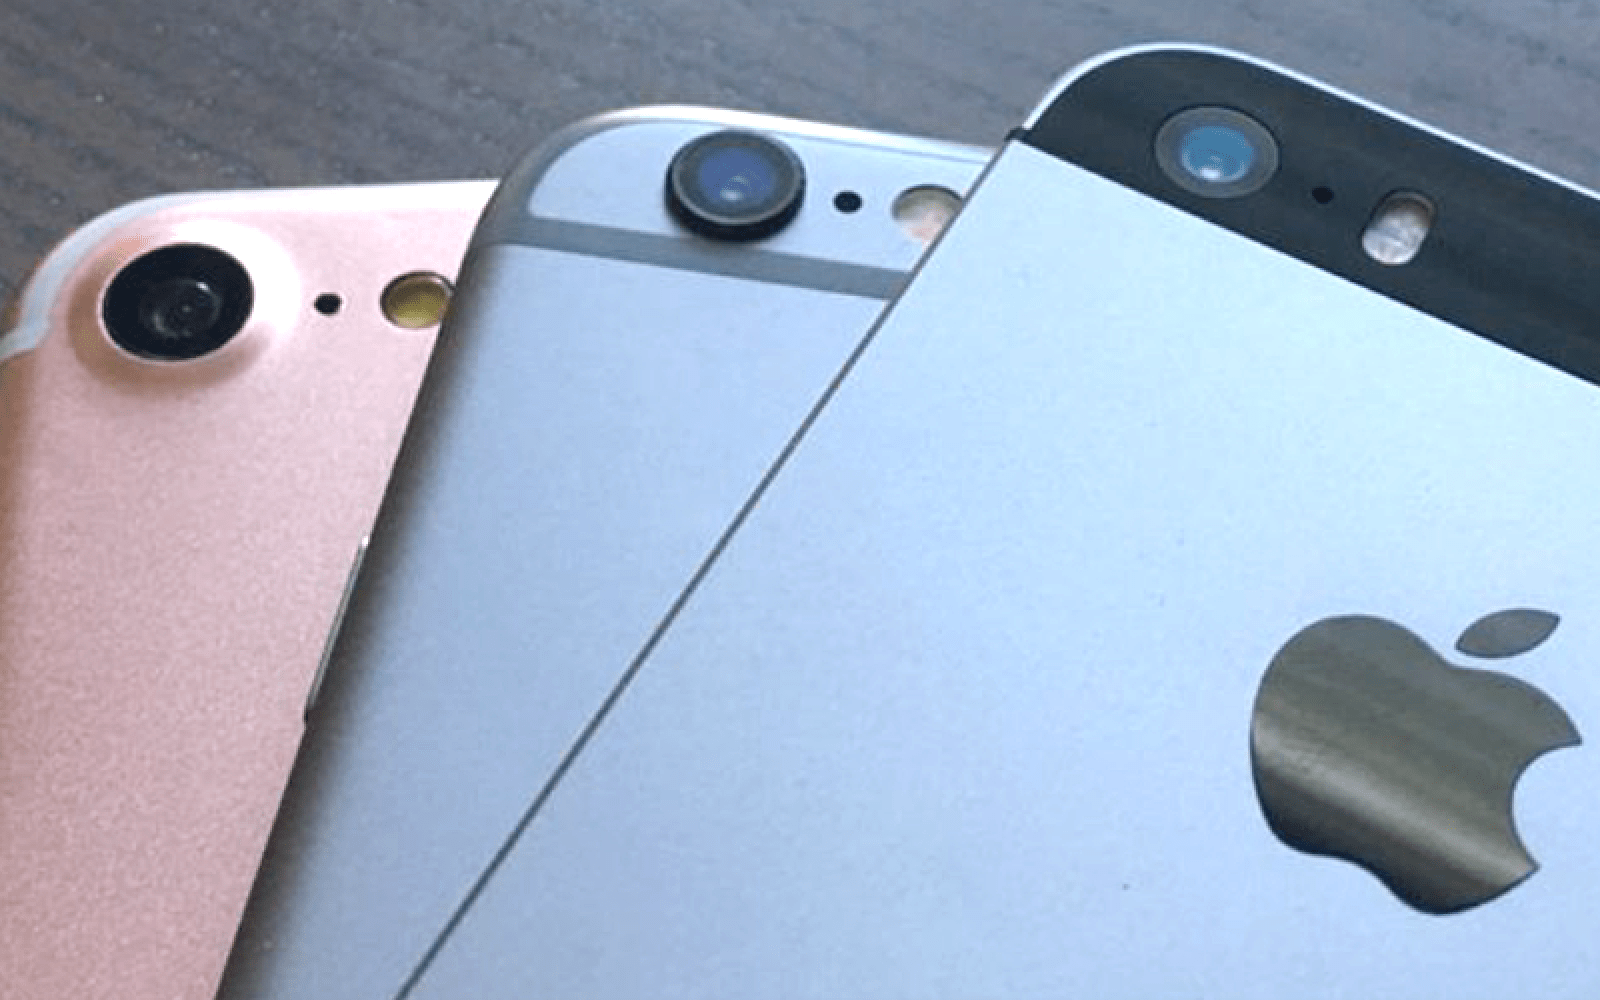 Comment: iPhone 7 camera bulge a big improvement on iPhone 6, but iPhone SE still leads the way